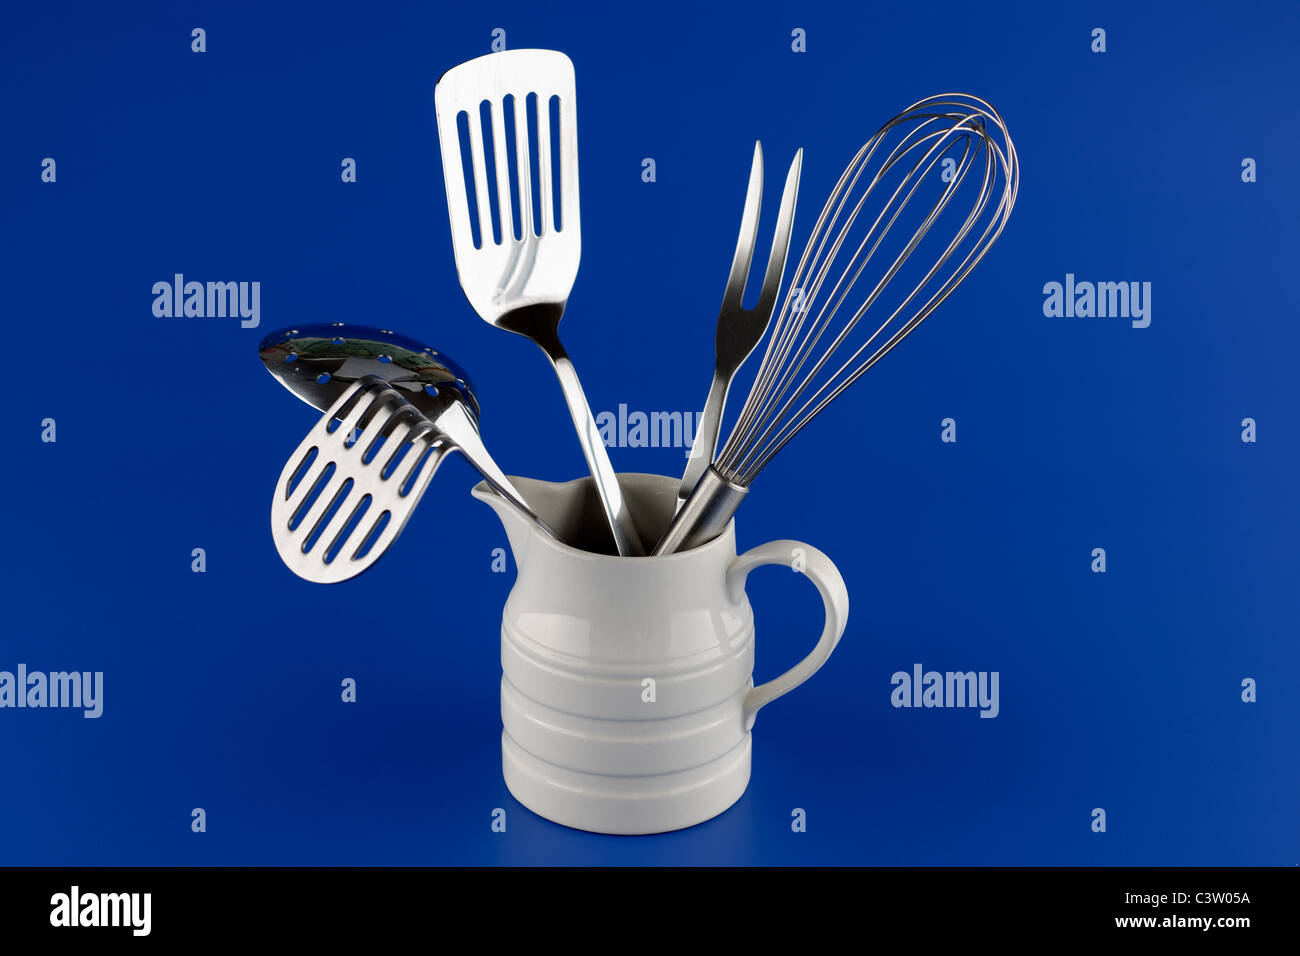 Stainless steel cutlery - Stock Image